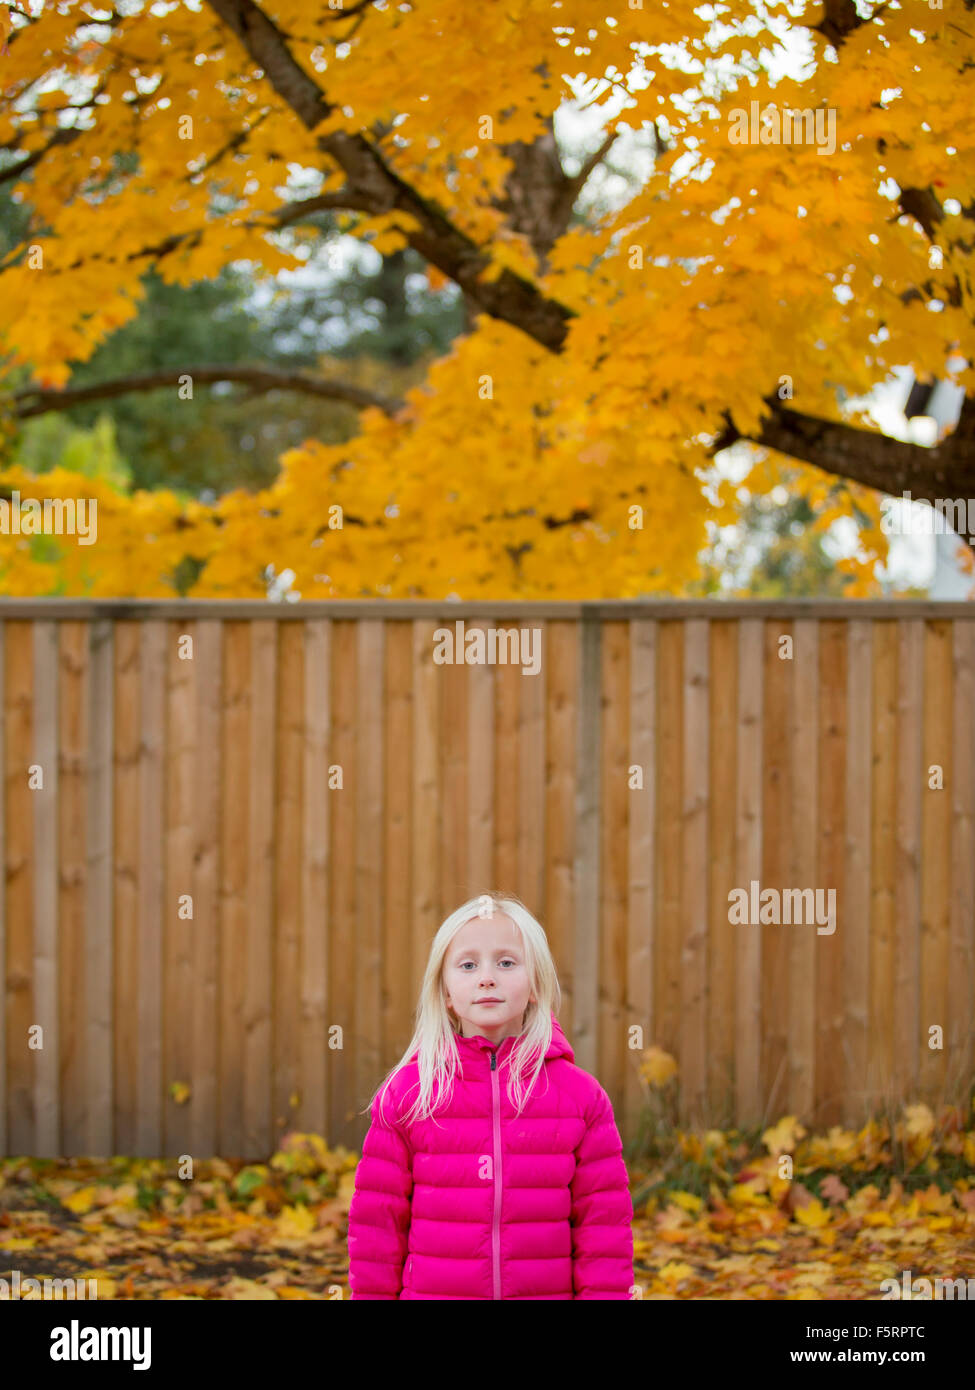 Sweden, Vastergotland, Lerum, Portrait of girl (4-5) in pink jacket - Stock Image